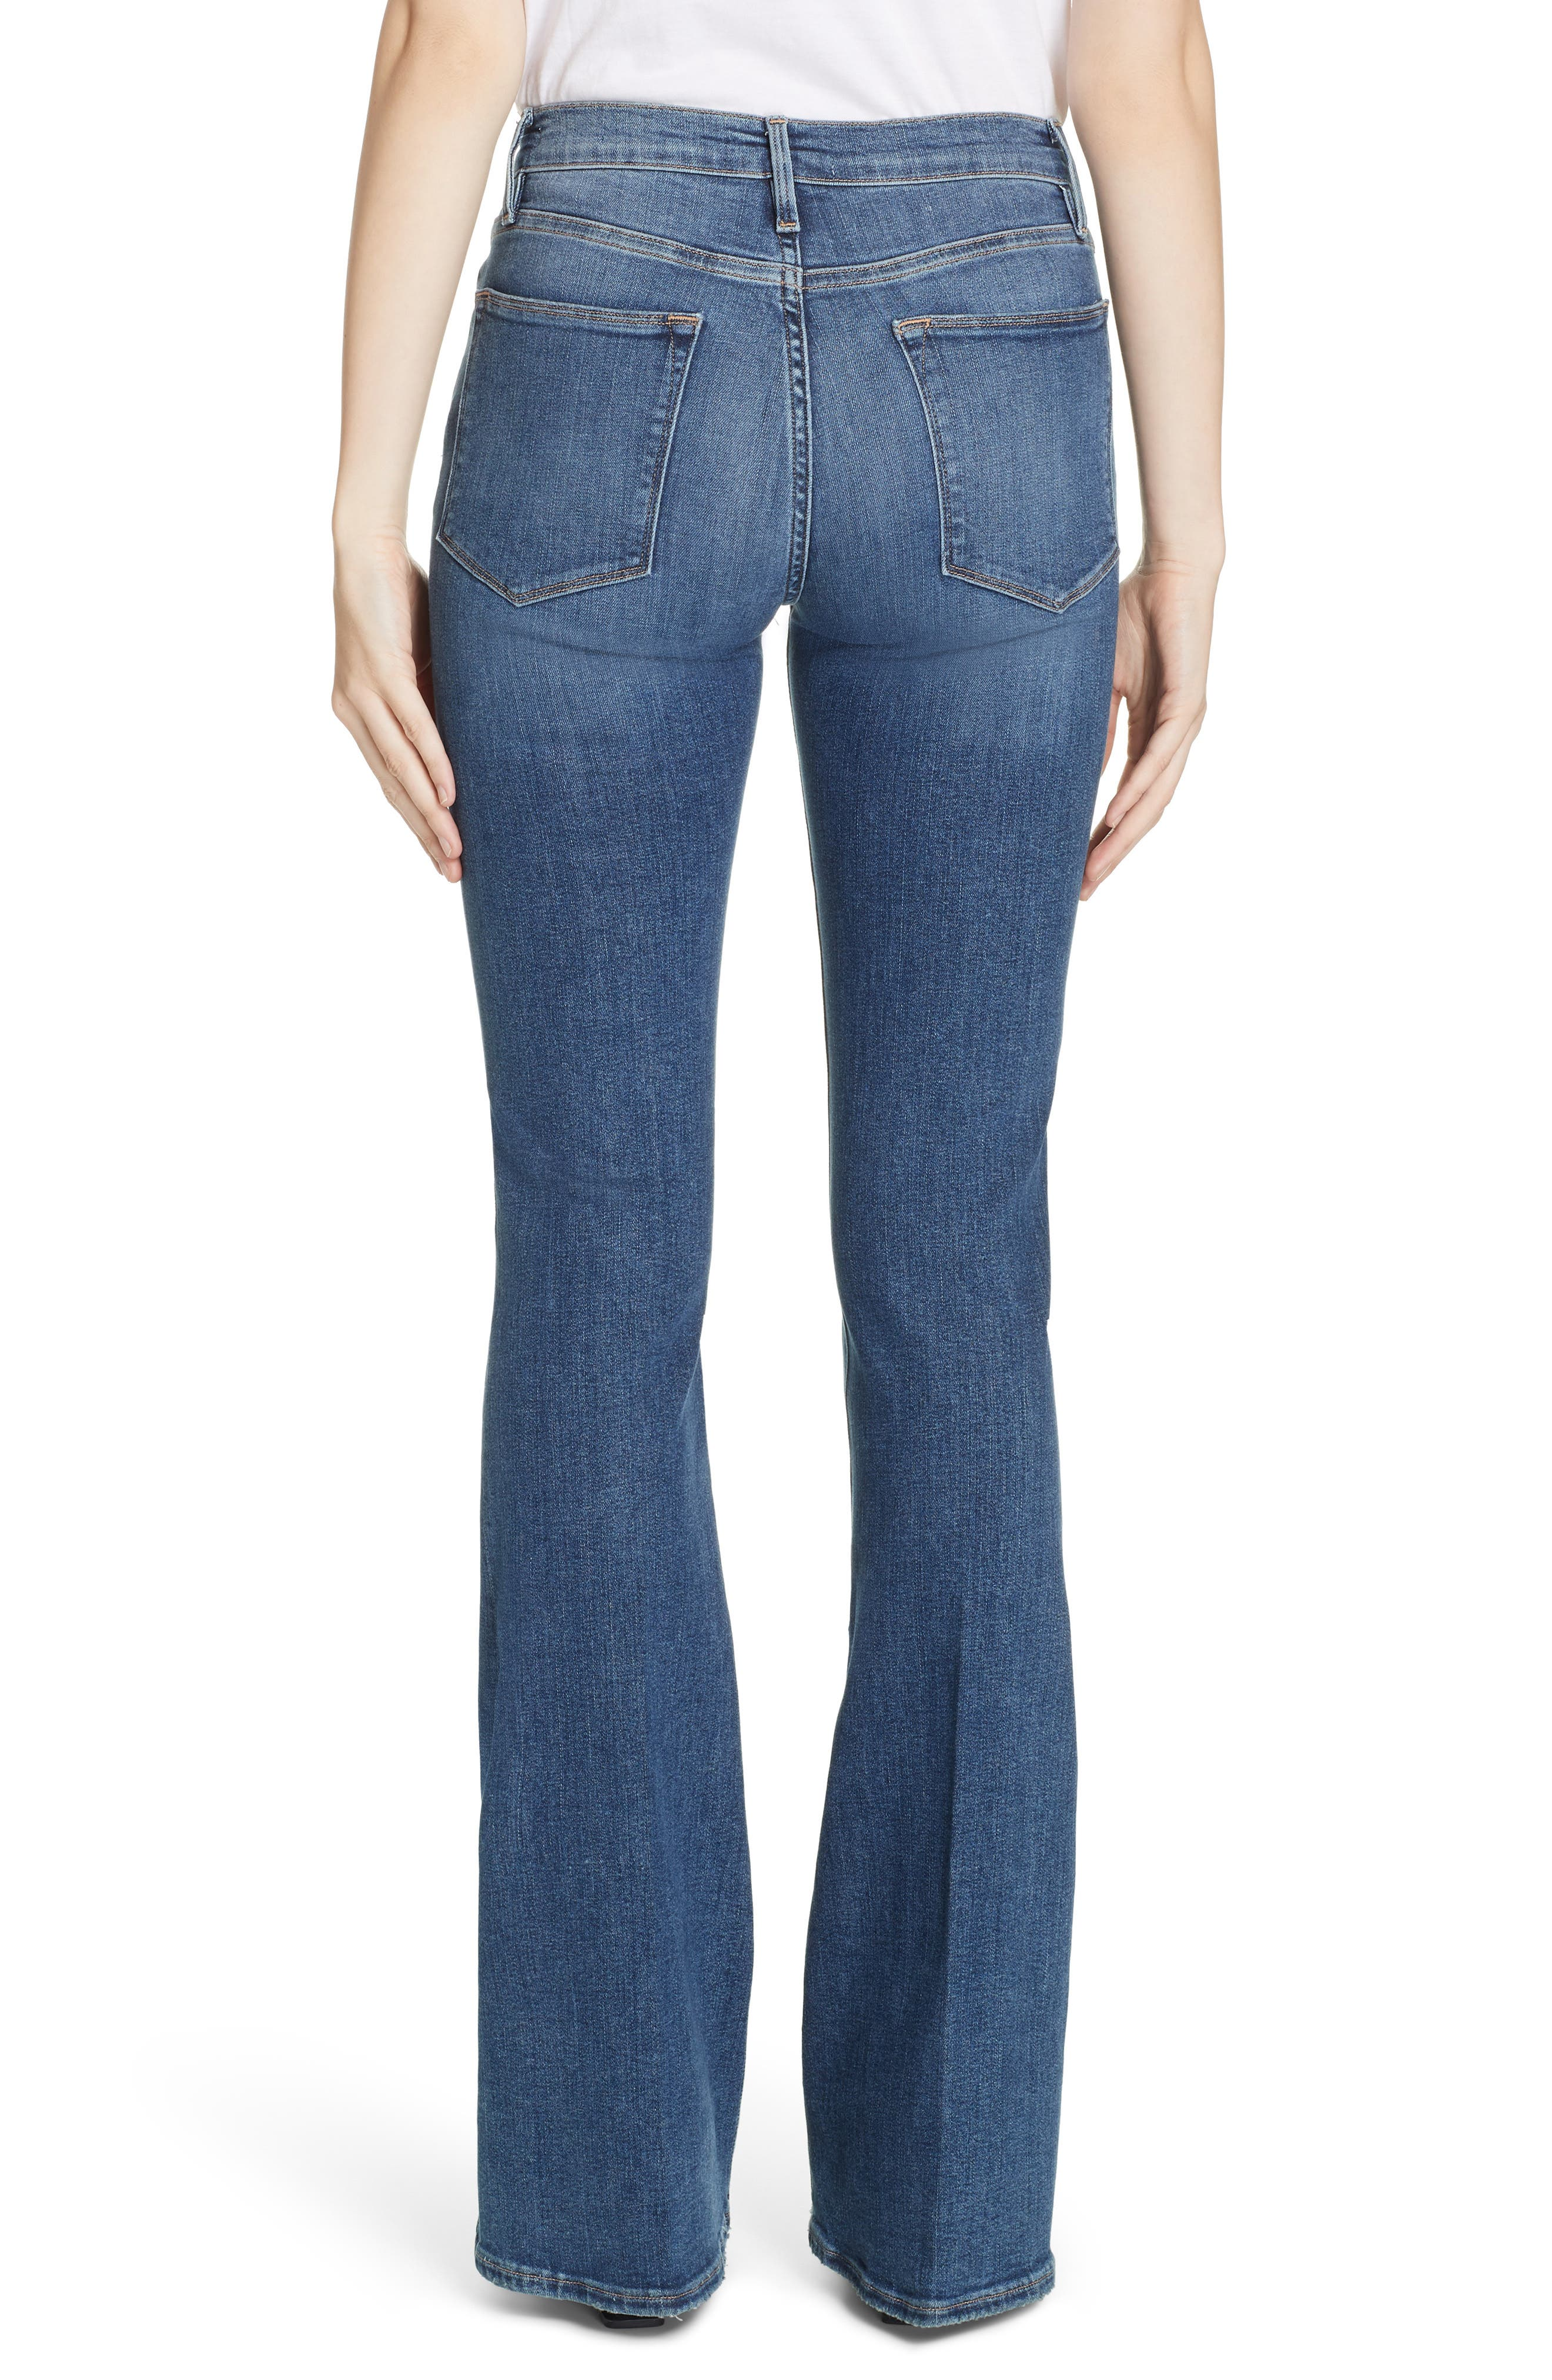 FRAME, Le High Flare Jeans, Alternate thumbnail 4, color, CRISTALLO